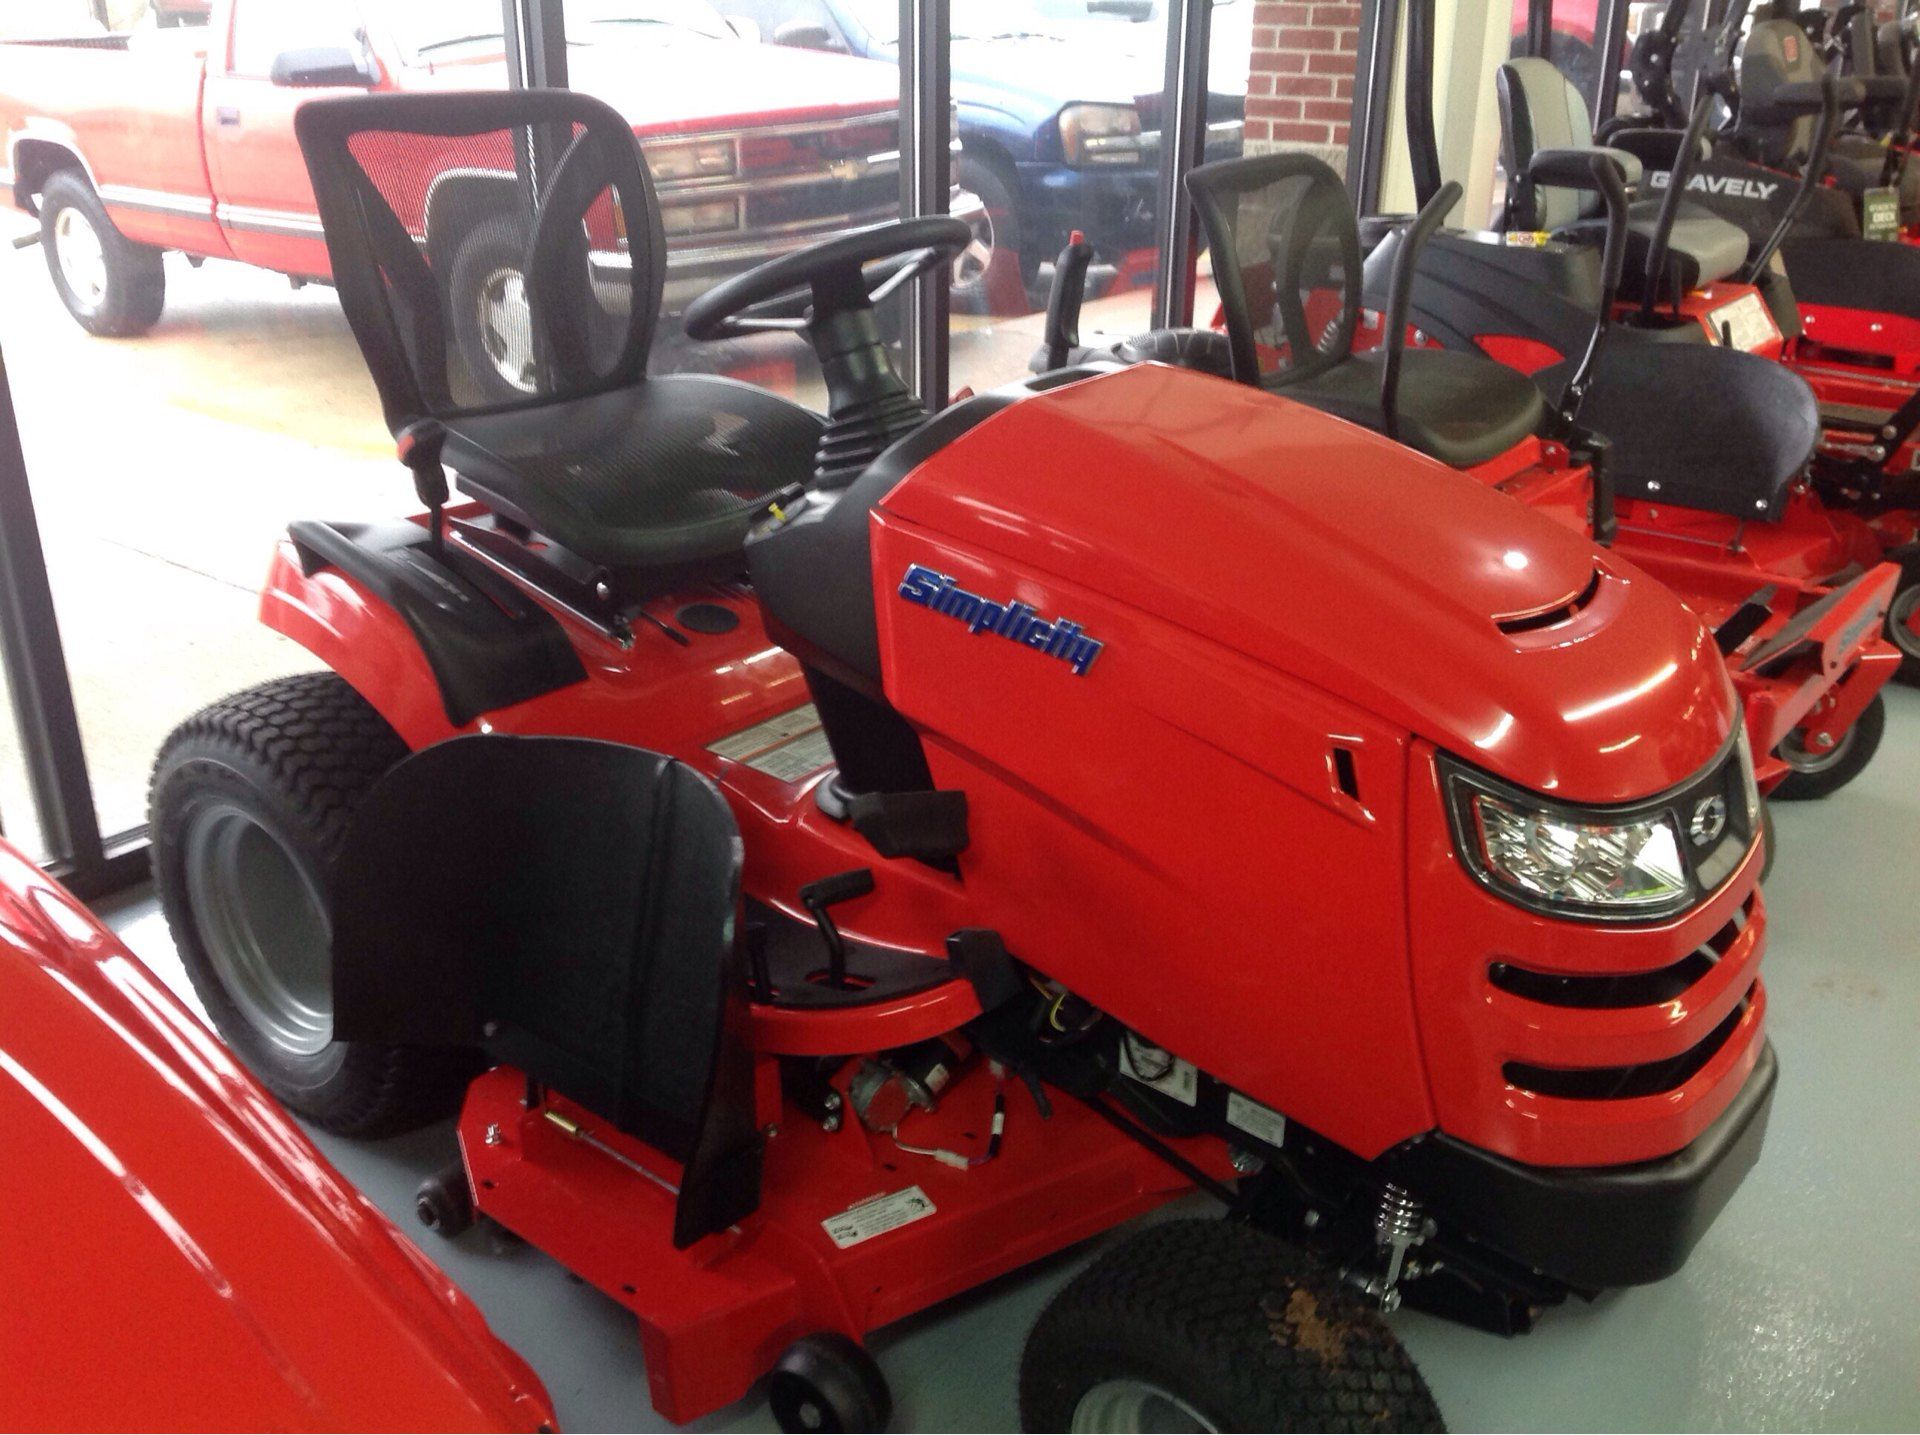 2019 Simplicity Conquest 52 in. Briggs & Stratton 25 hp in Lafayette, Indiana - Photo 3